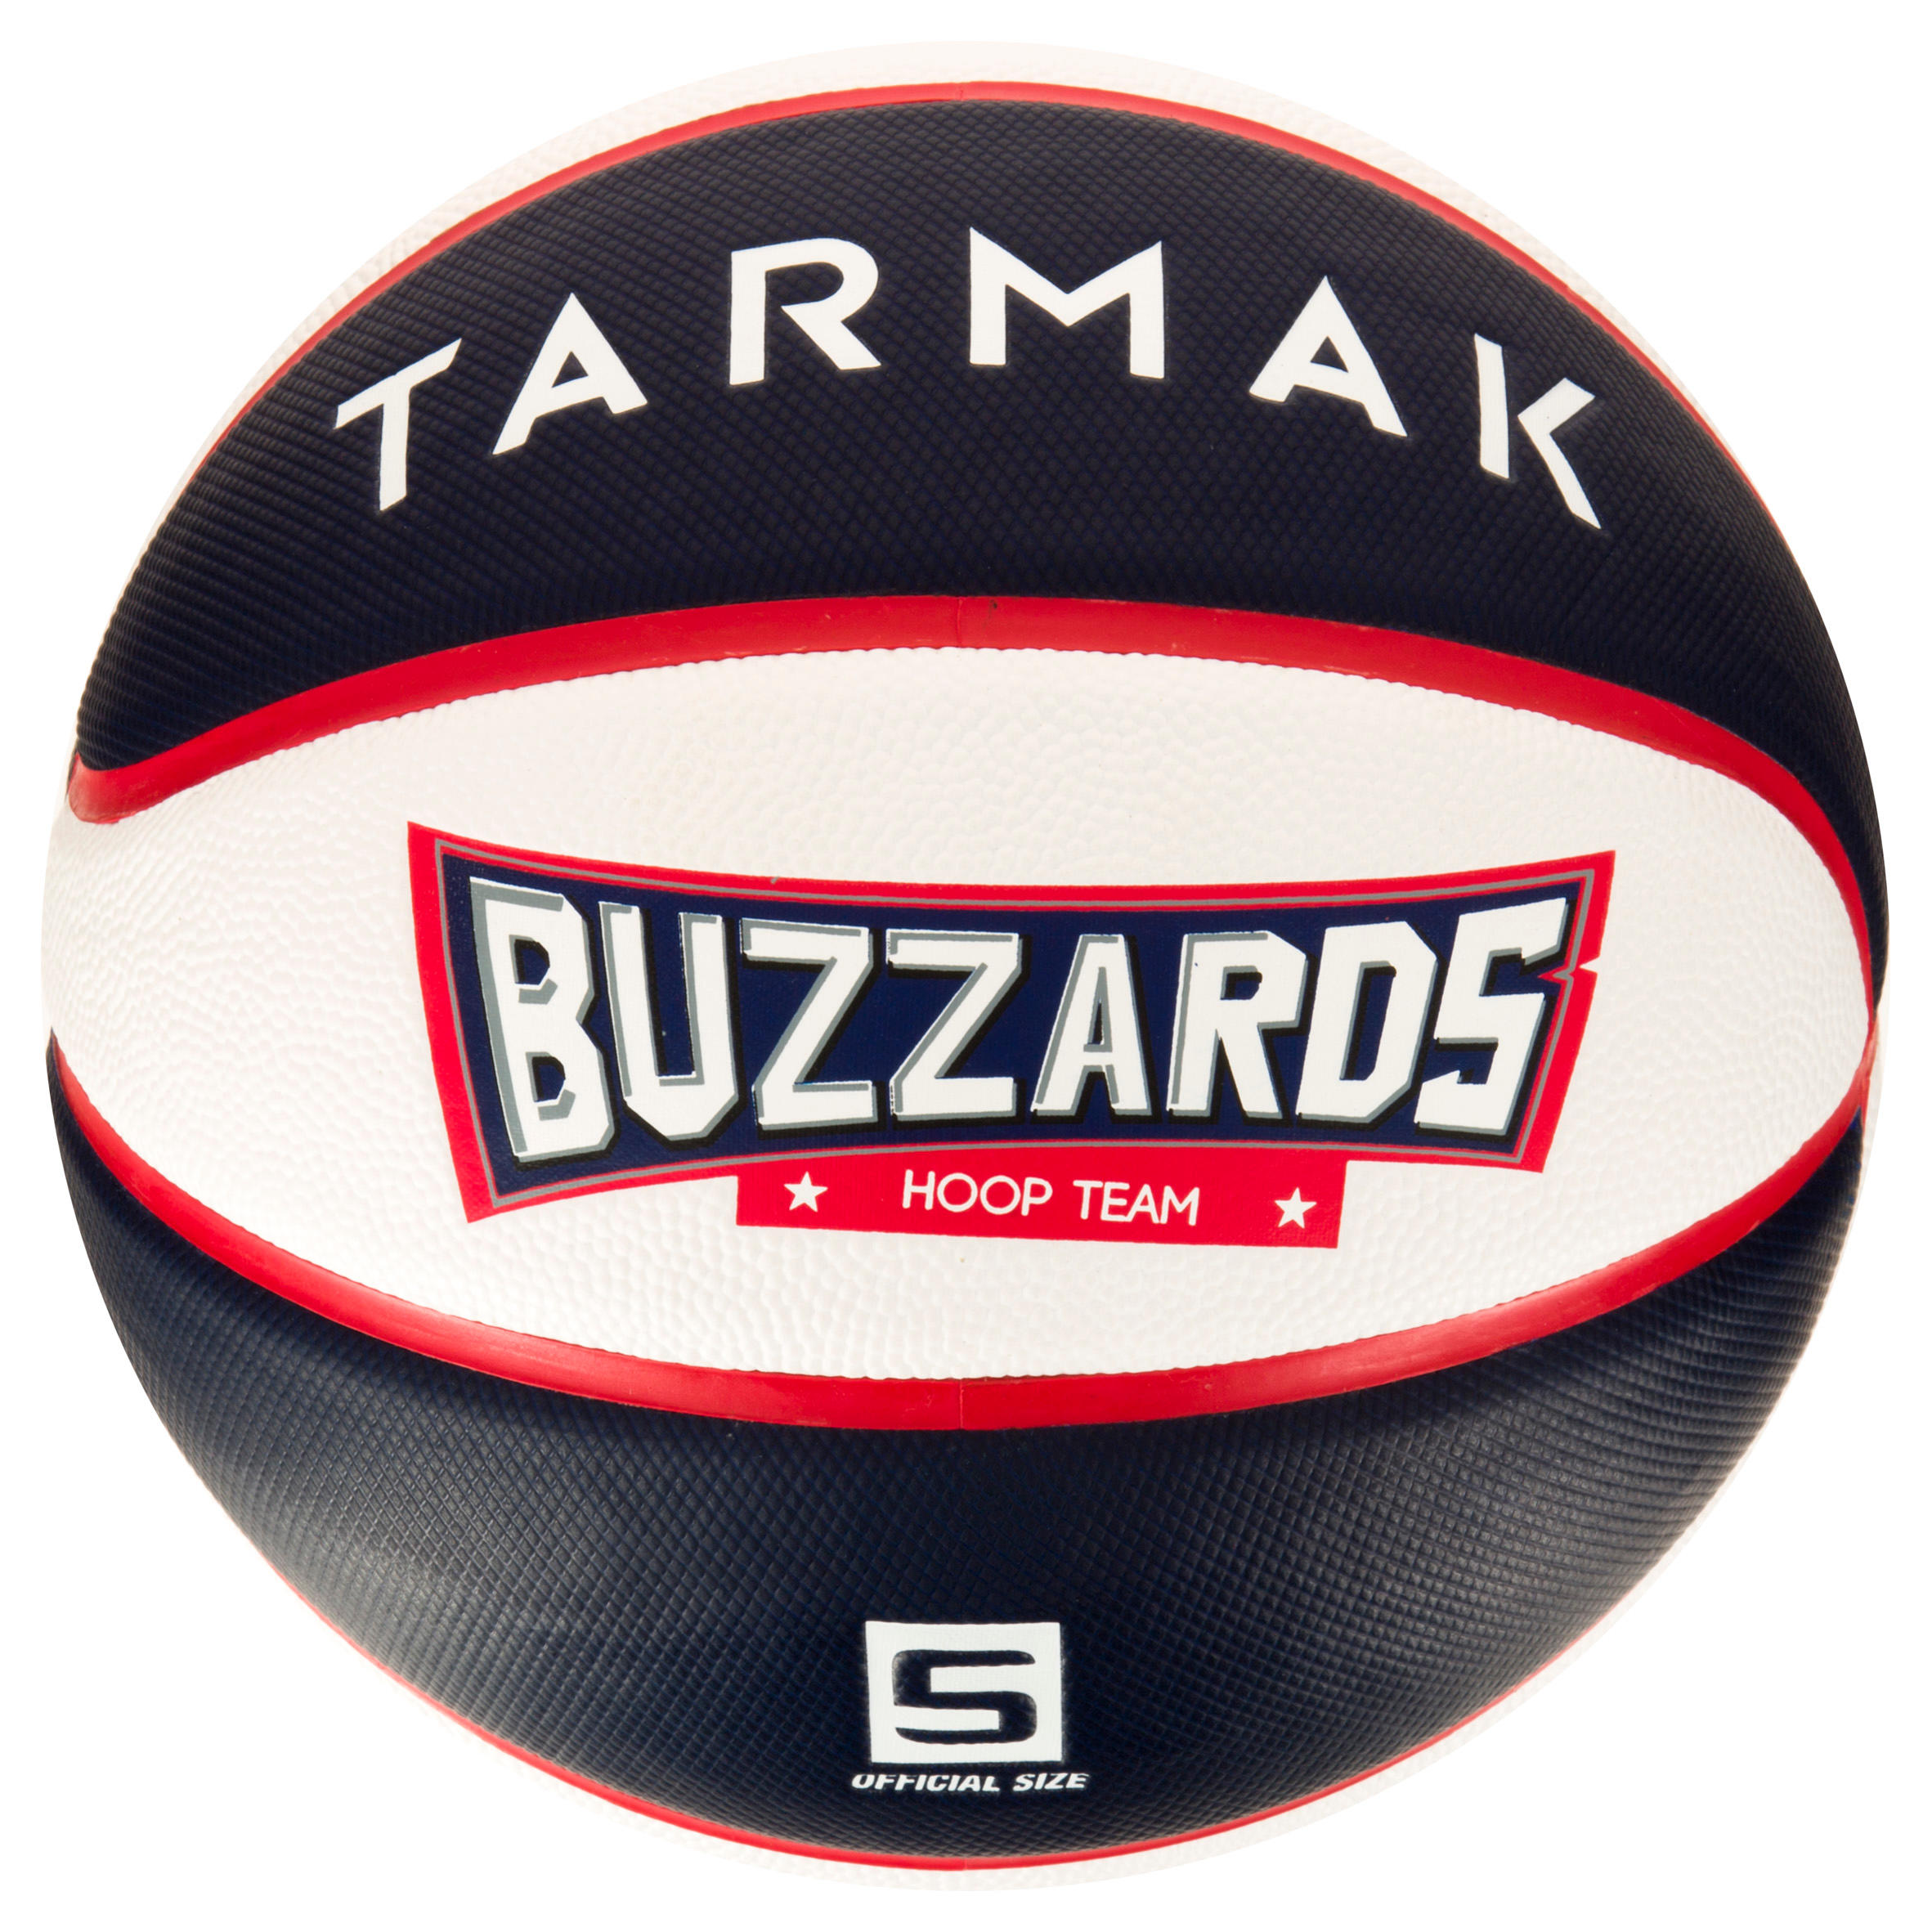 Wizzy Buzzard Kids' Size 3 Basketball - Blue/White (Kids ages 4 to 6 years old)